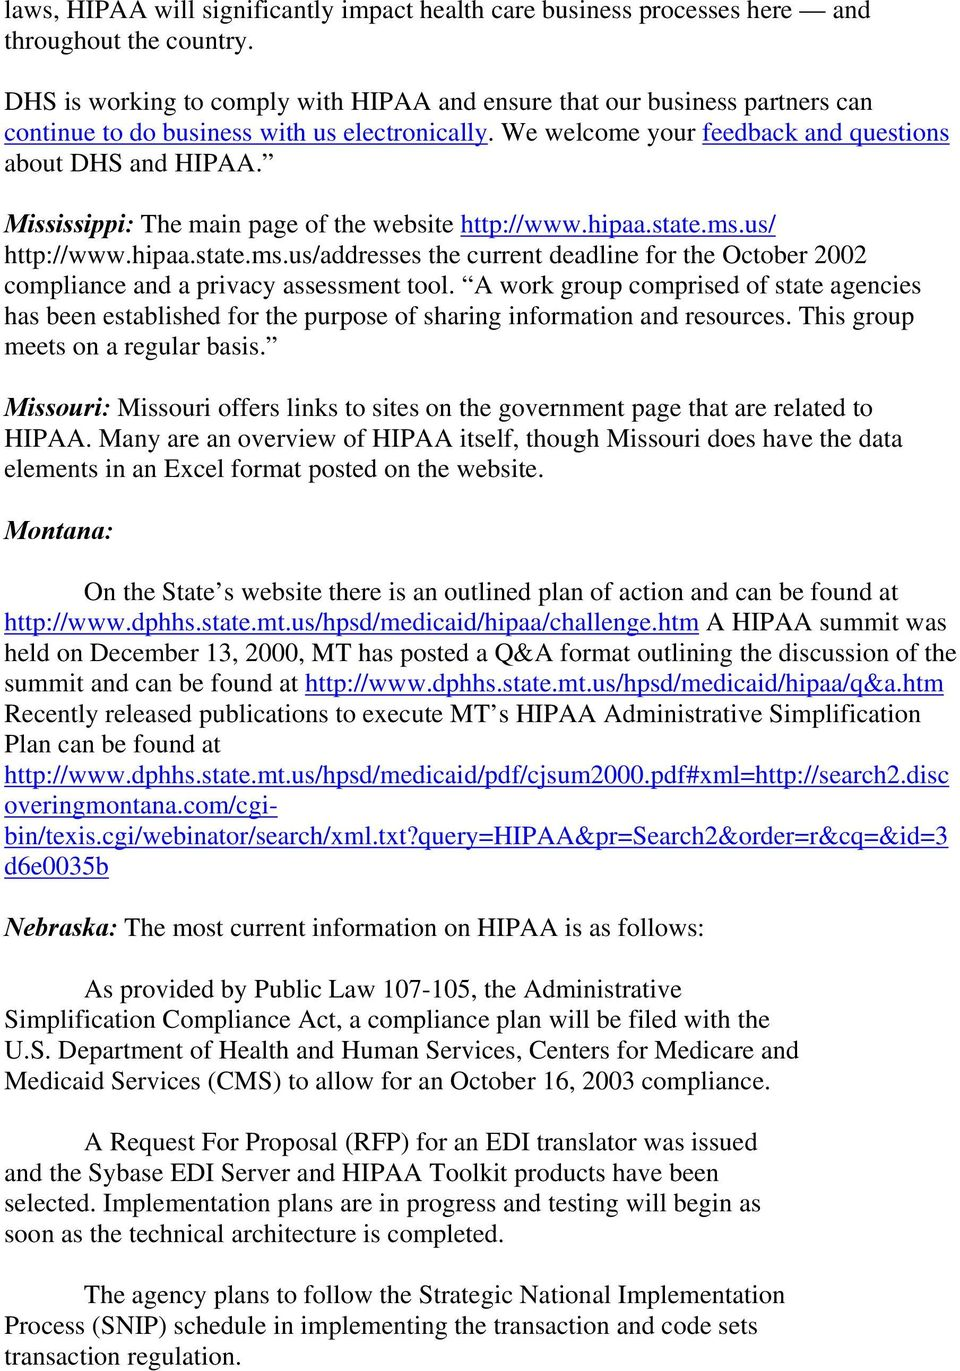 Mississippi: The main page of the website http://www.hipaa.state.ms.us/ http://www.hipaa.state.ms.us/addresses the current deadline for the October 2002 compliance and a privacy assessment tool.